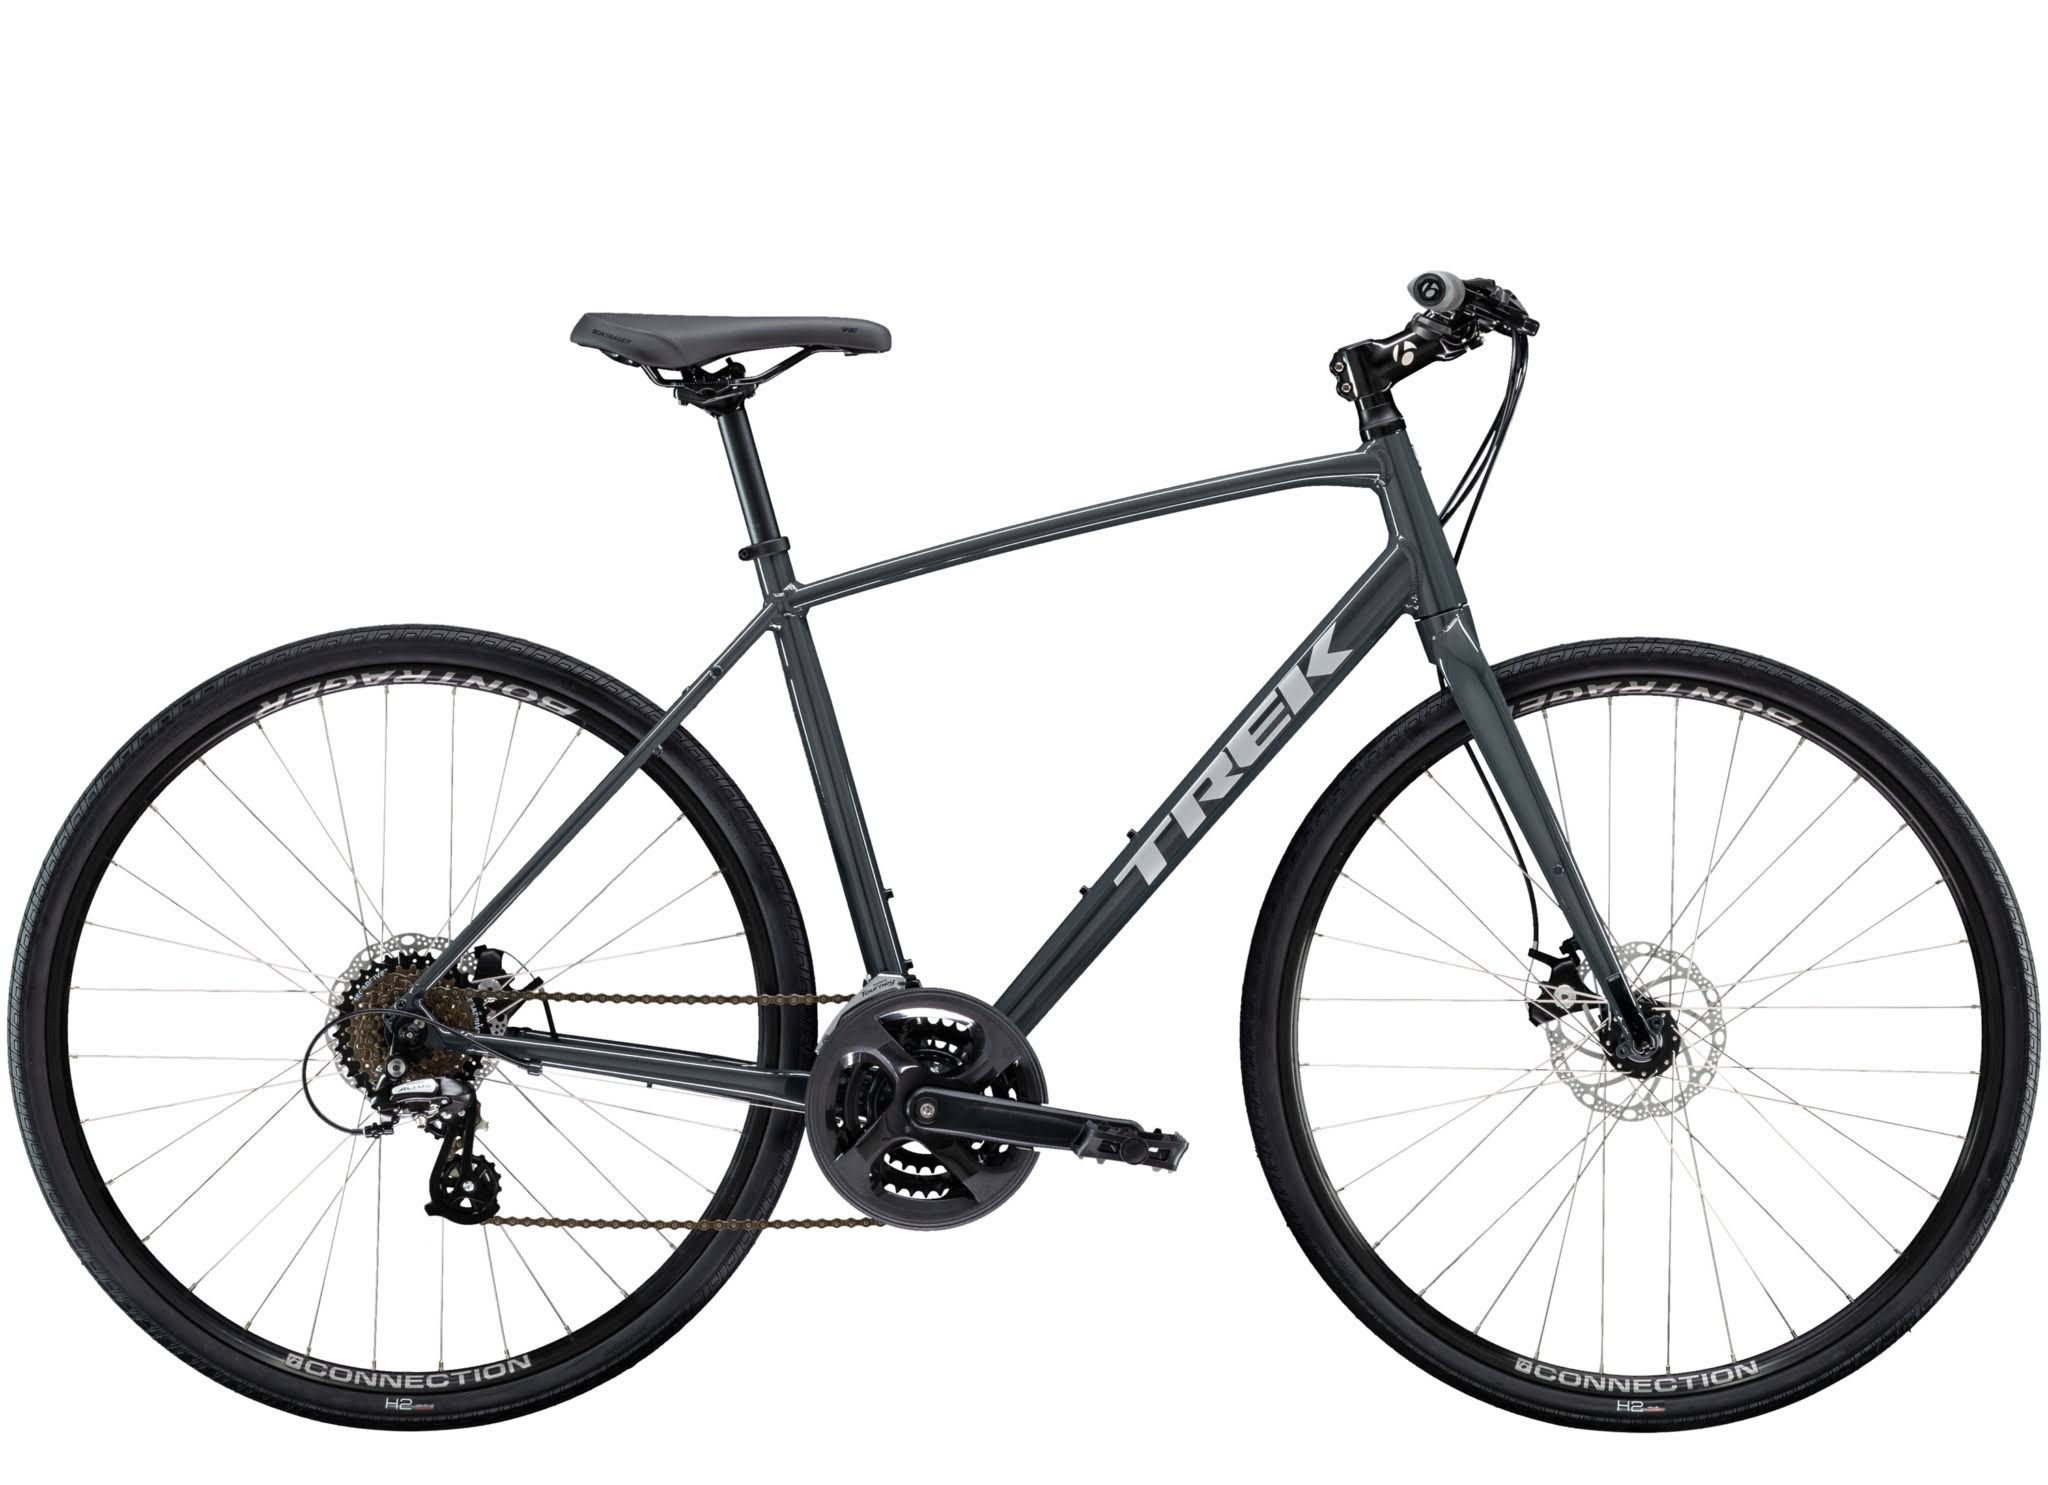 Trek FX 1 Disc Fitness Bikes - Solid Charcoal, X Large